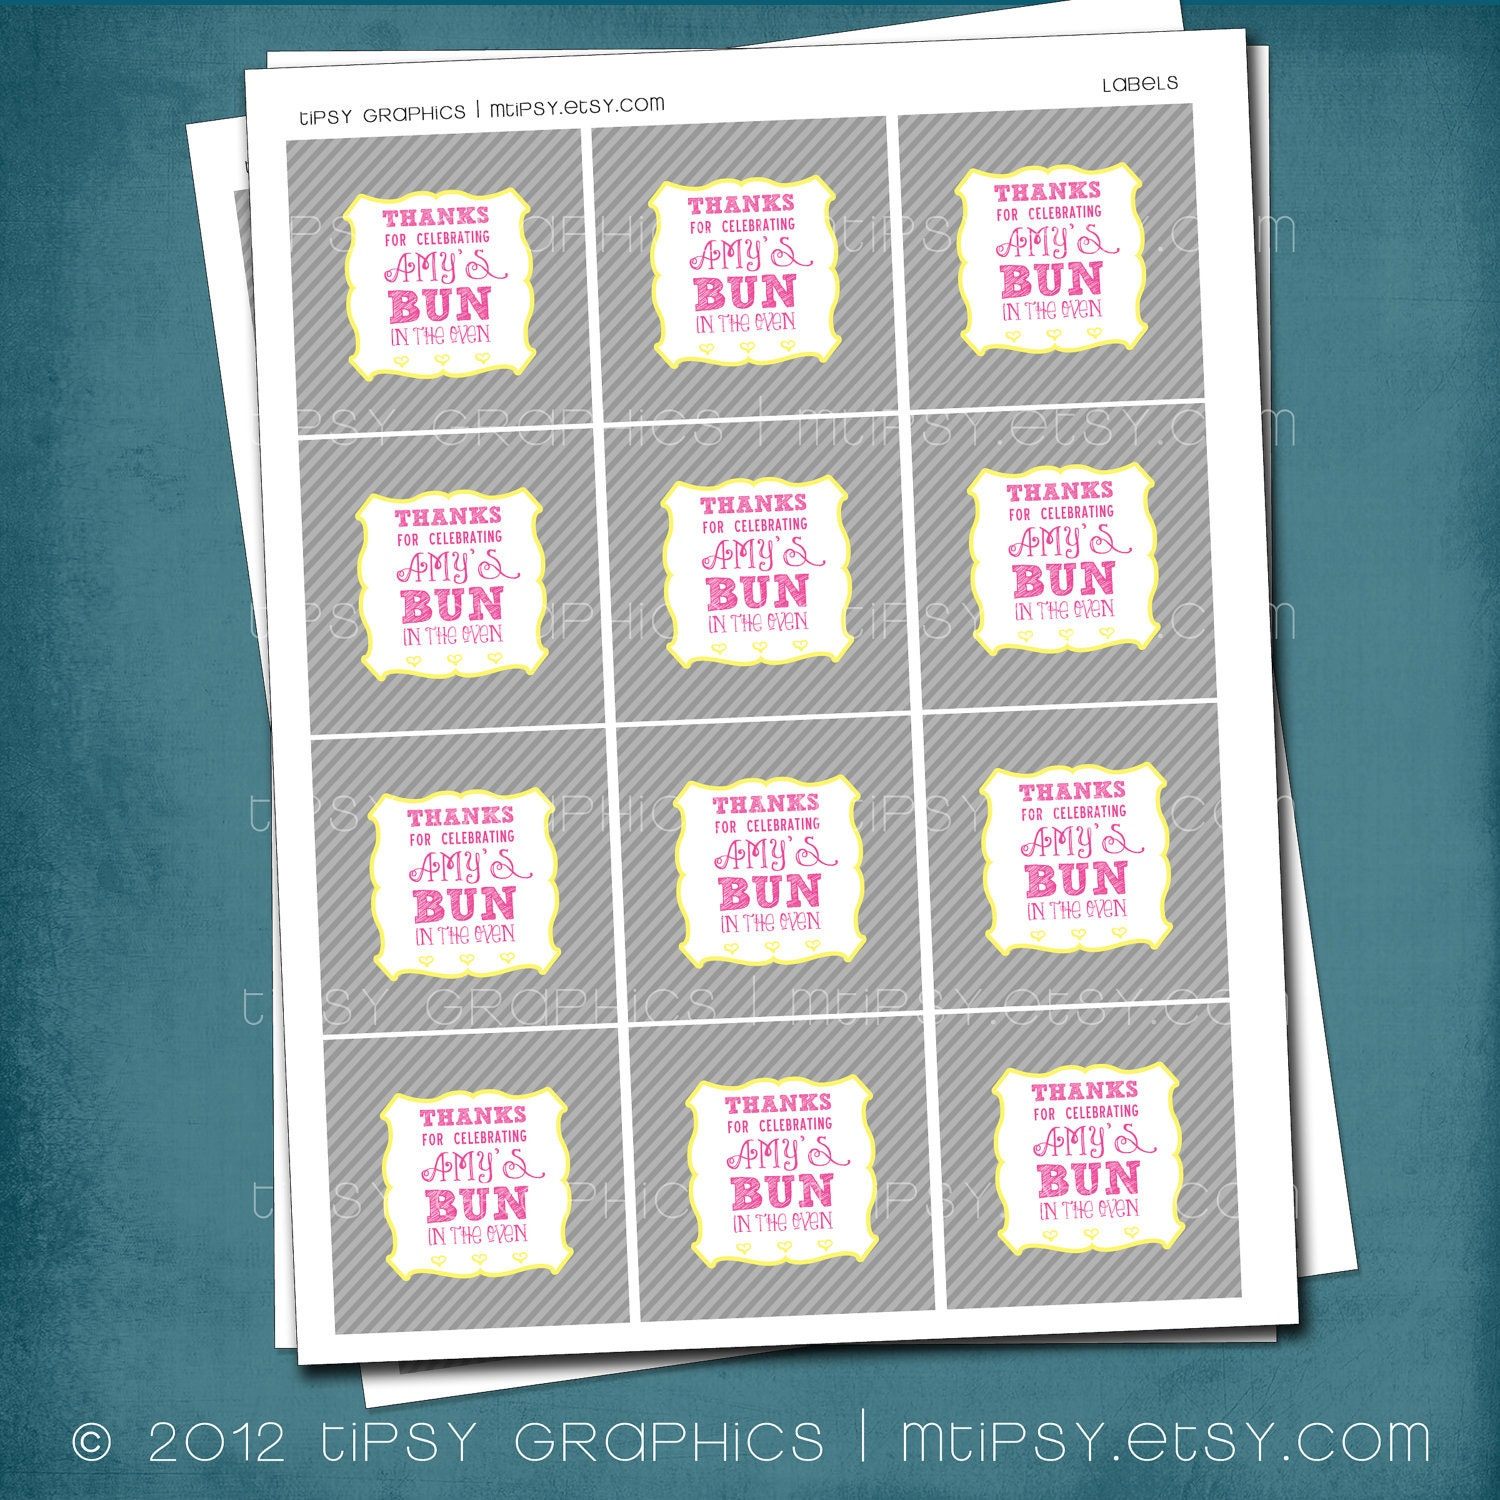 Bun in the oven Clip Art and Stock Illustrations. 11 Bun ...